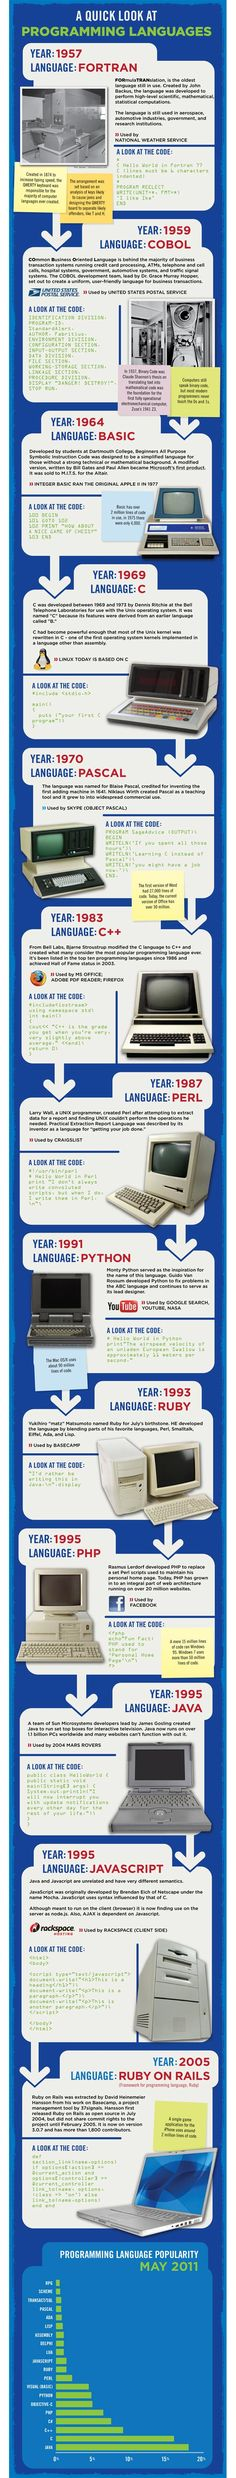 Cool InfoGraphic covering the evolution of Programming Languages from 1957 to 2011